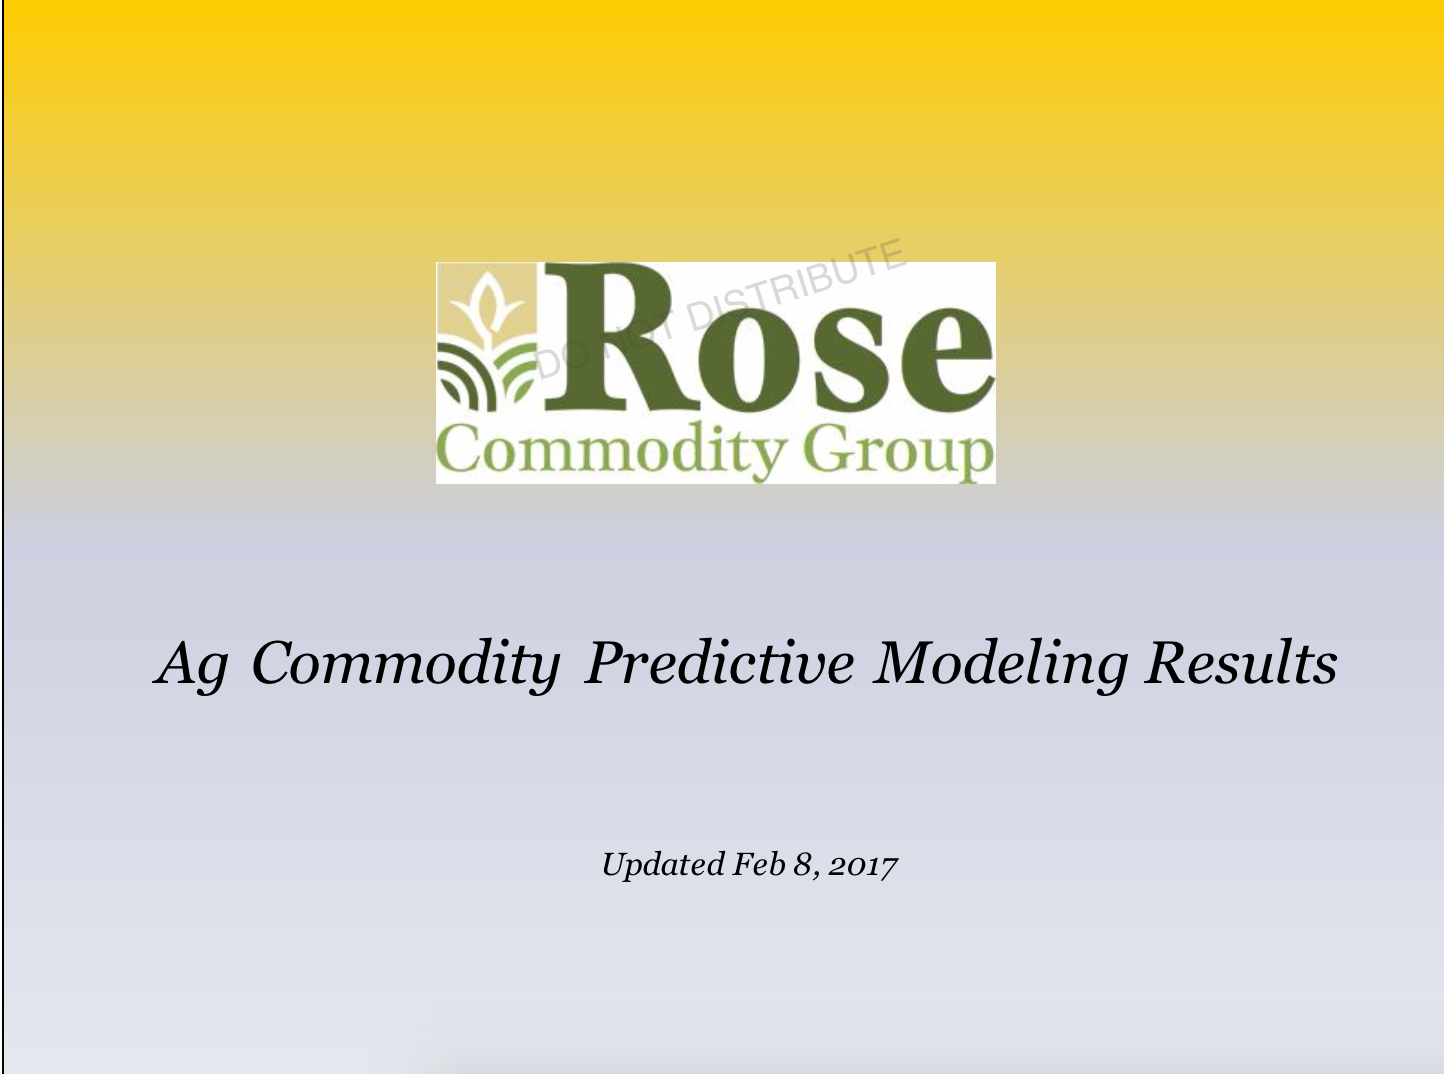 Ag Commodity Predictive Modeling Results – Feb. 8, 2017